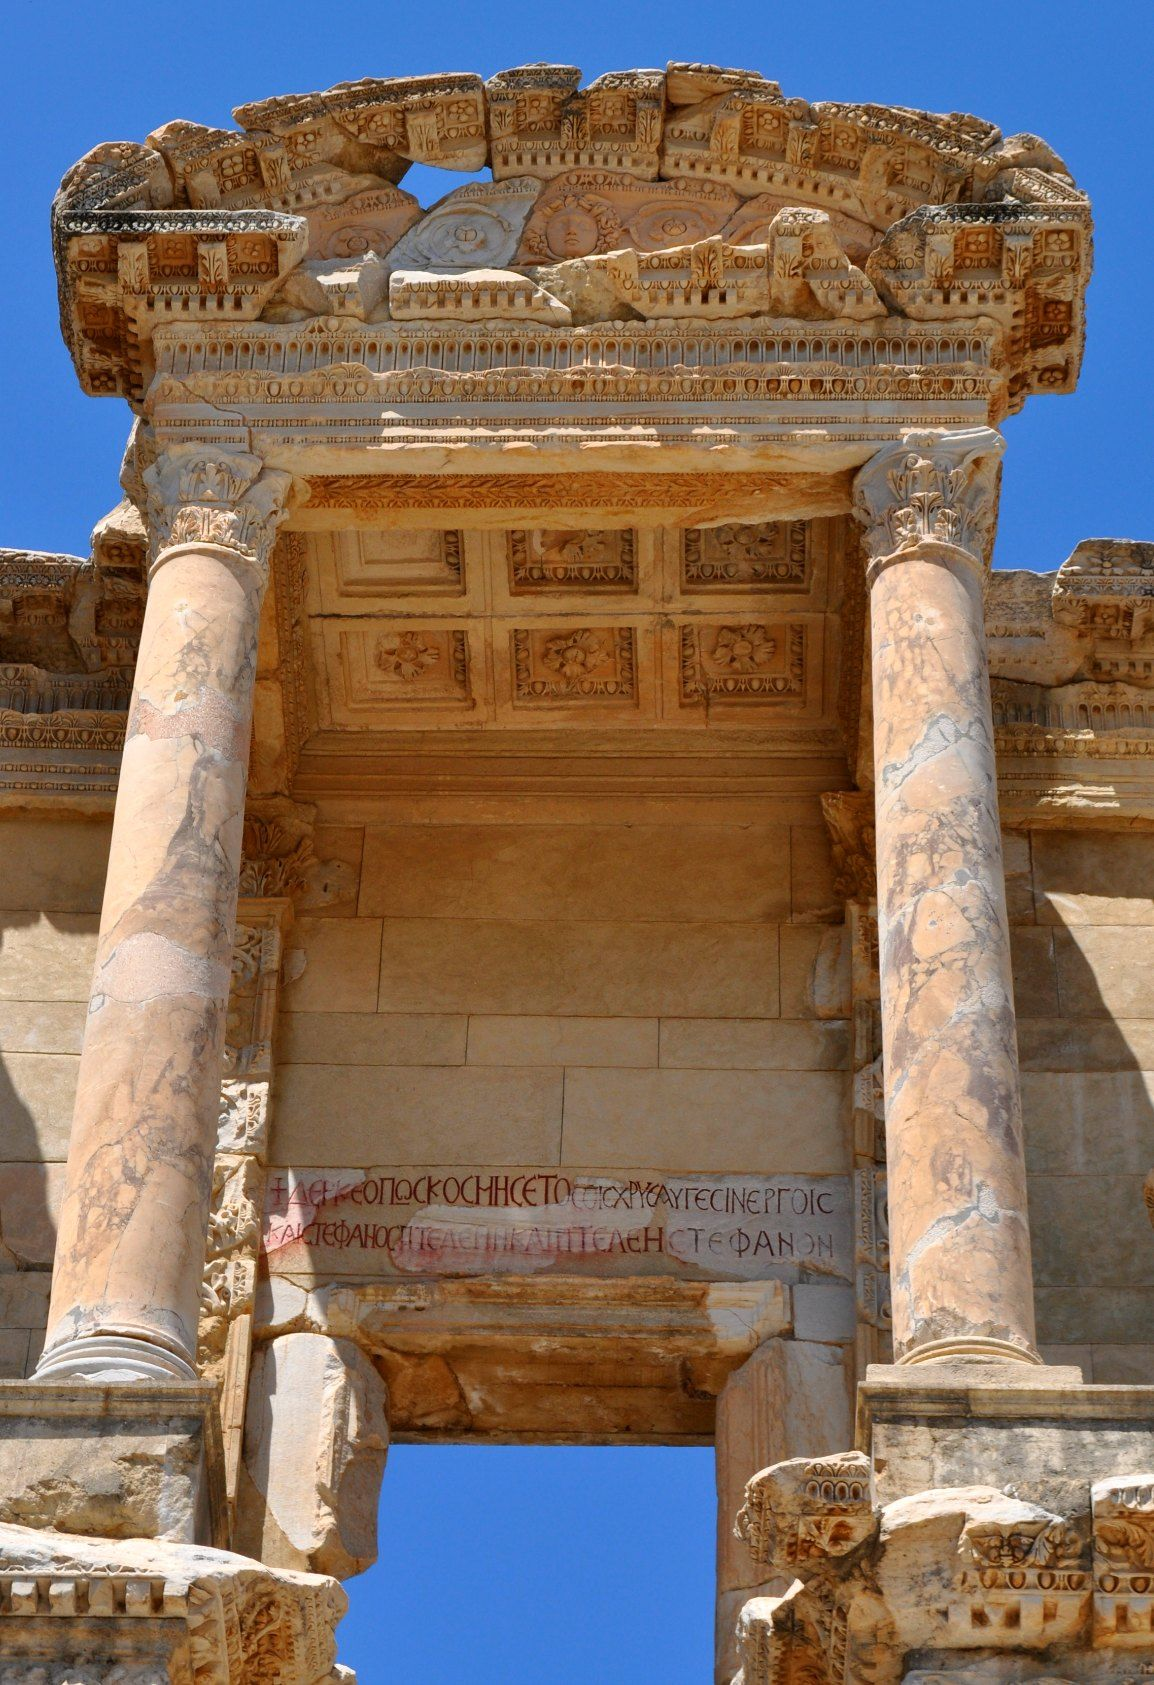 The Library of Celsius in Turkey's ancient city of Ephesus (Efes).